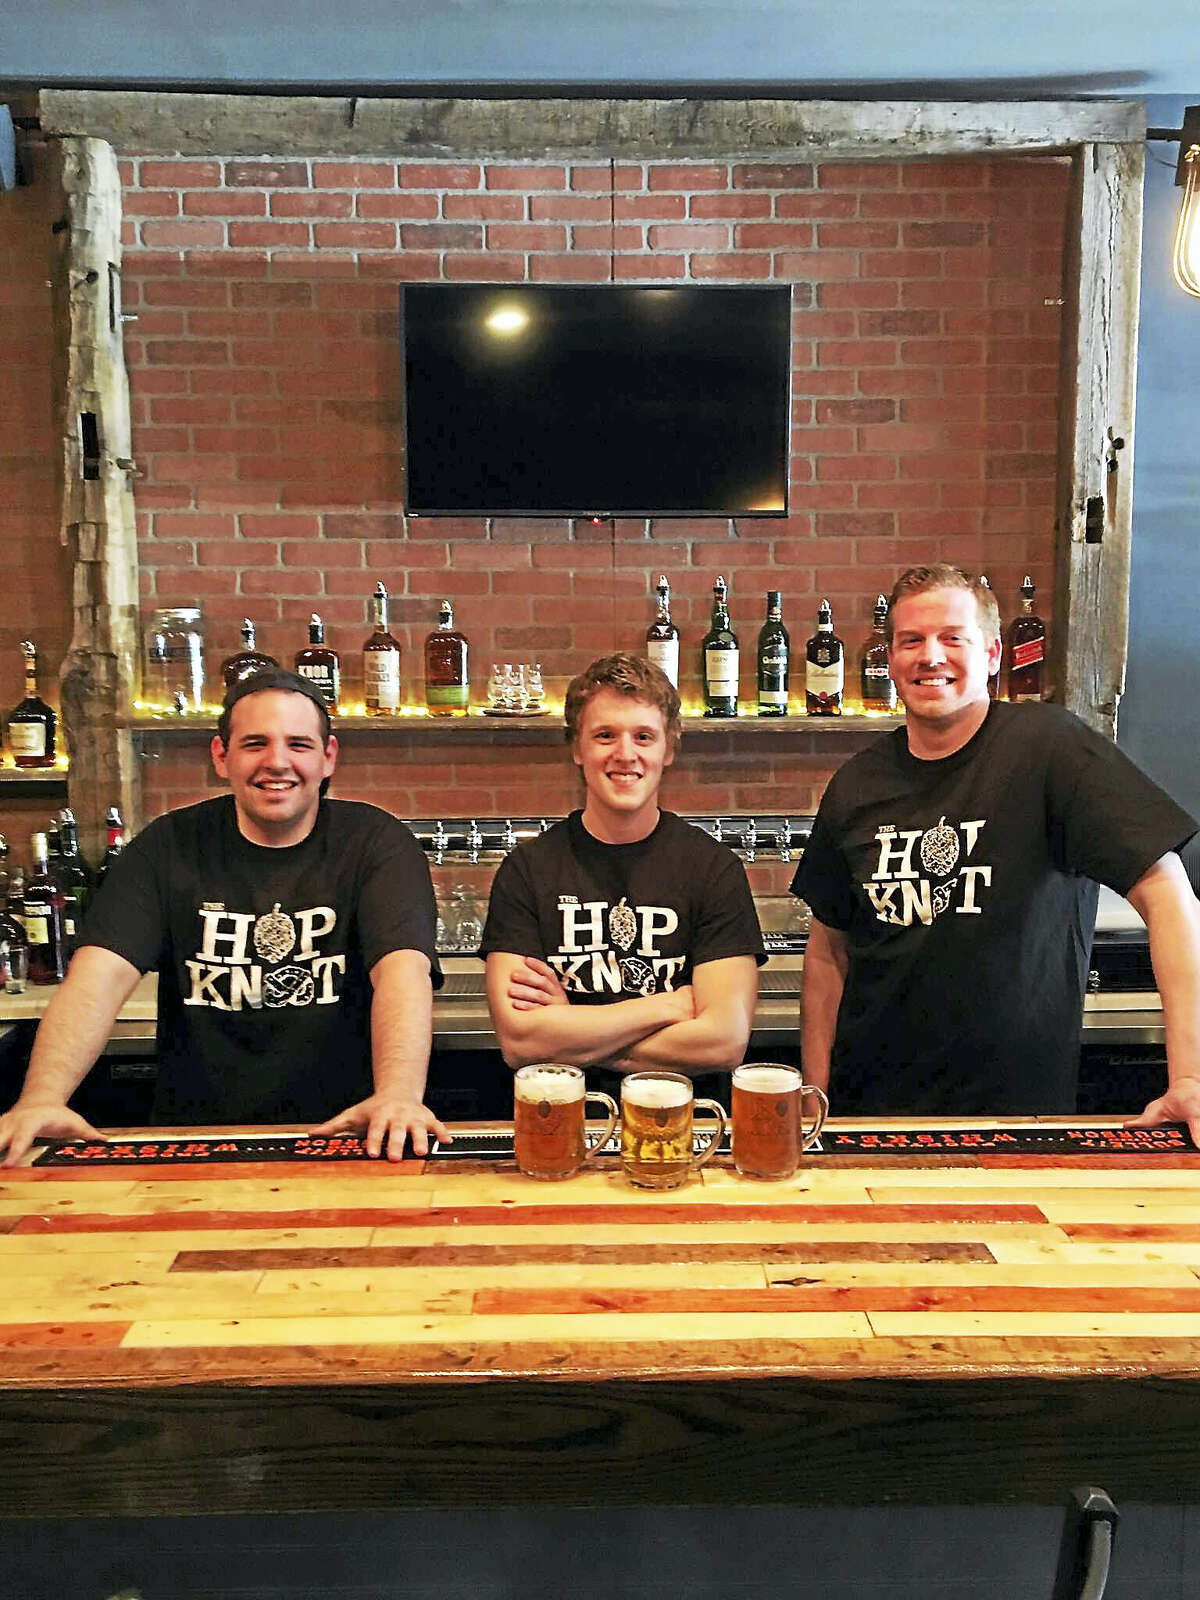 University of Connecticut graduates are launching the Hop Knot beer and pretzel bar on Friday in Middletown. From left are general manager Anthony Calamusa and owners John Schauster and Michael Boney.